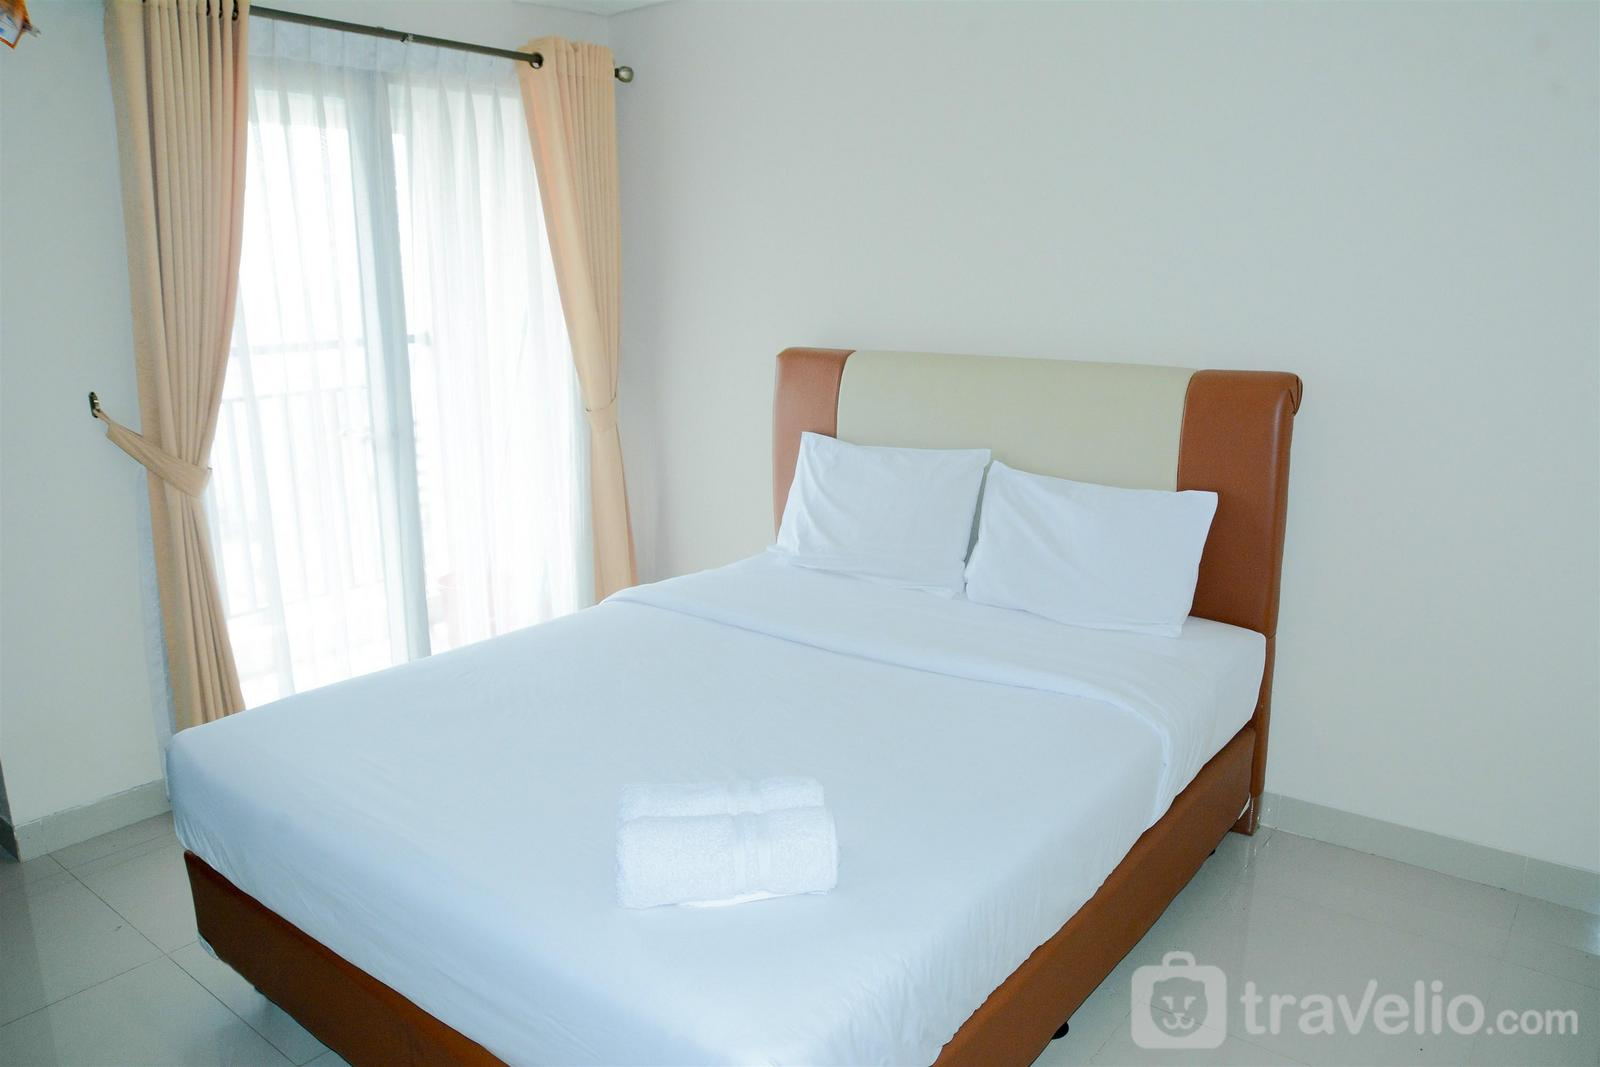 Atria Residences Gading Serpong - Simply Studio Room Atria Residence Apartment near Summarecon Mall By Travelio